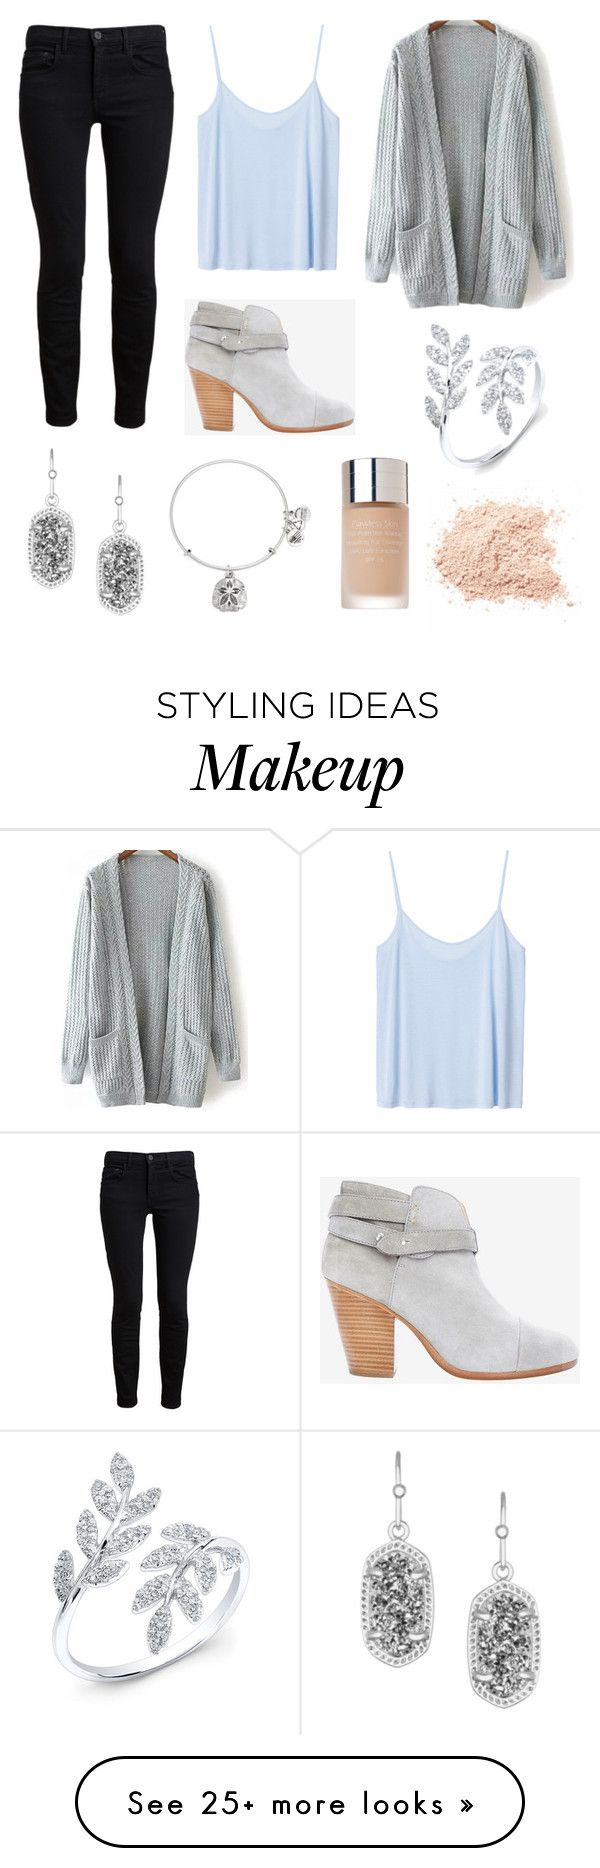 """shining all around"" by annavav on Polyvore featuring мода, Proenza Schouler, Monki, rag & bone, Kendra Scott, Alex and Ani и Prescriptives"